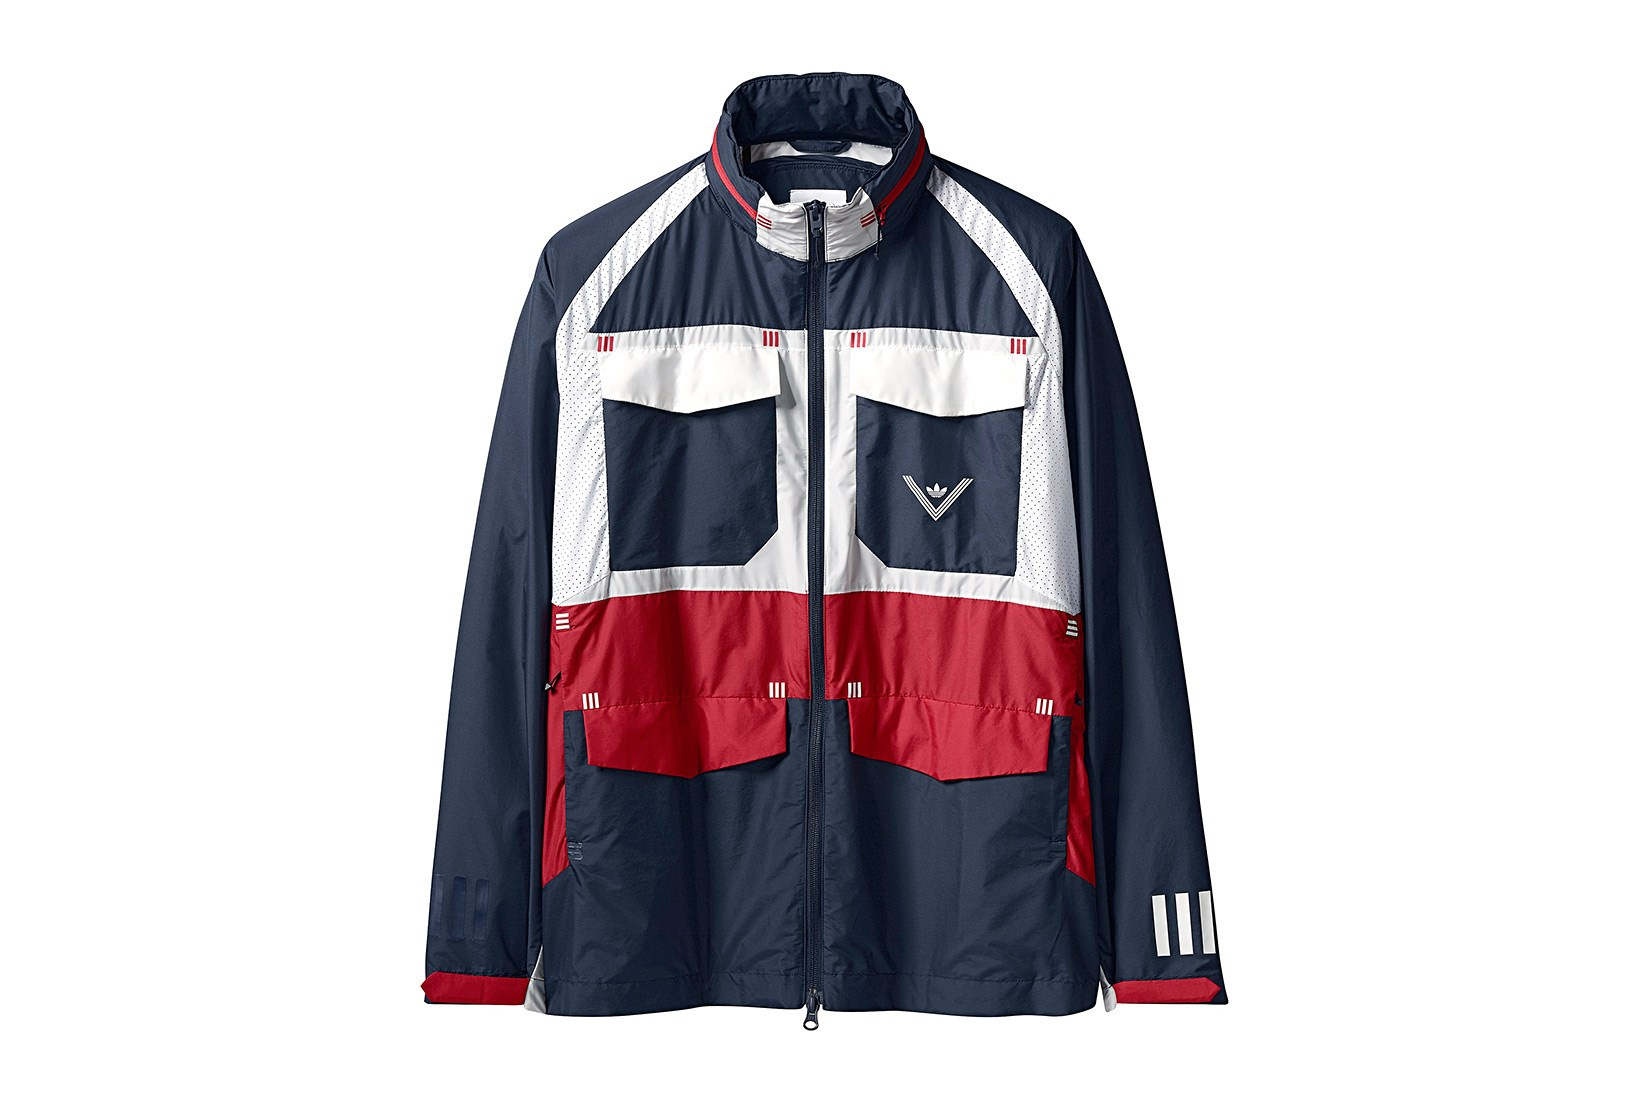 Voici la collection White Mountaineering x Adidas Originals sous un autre regard